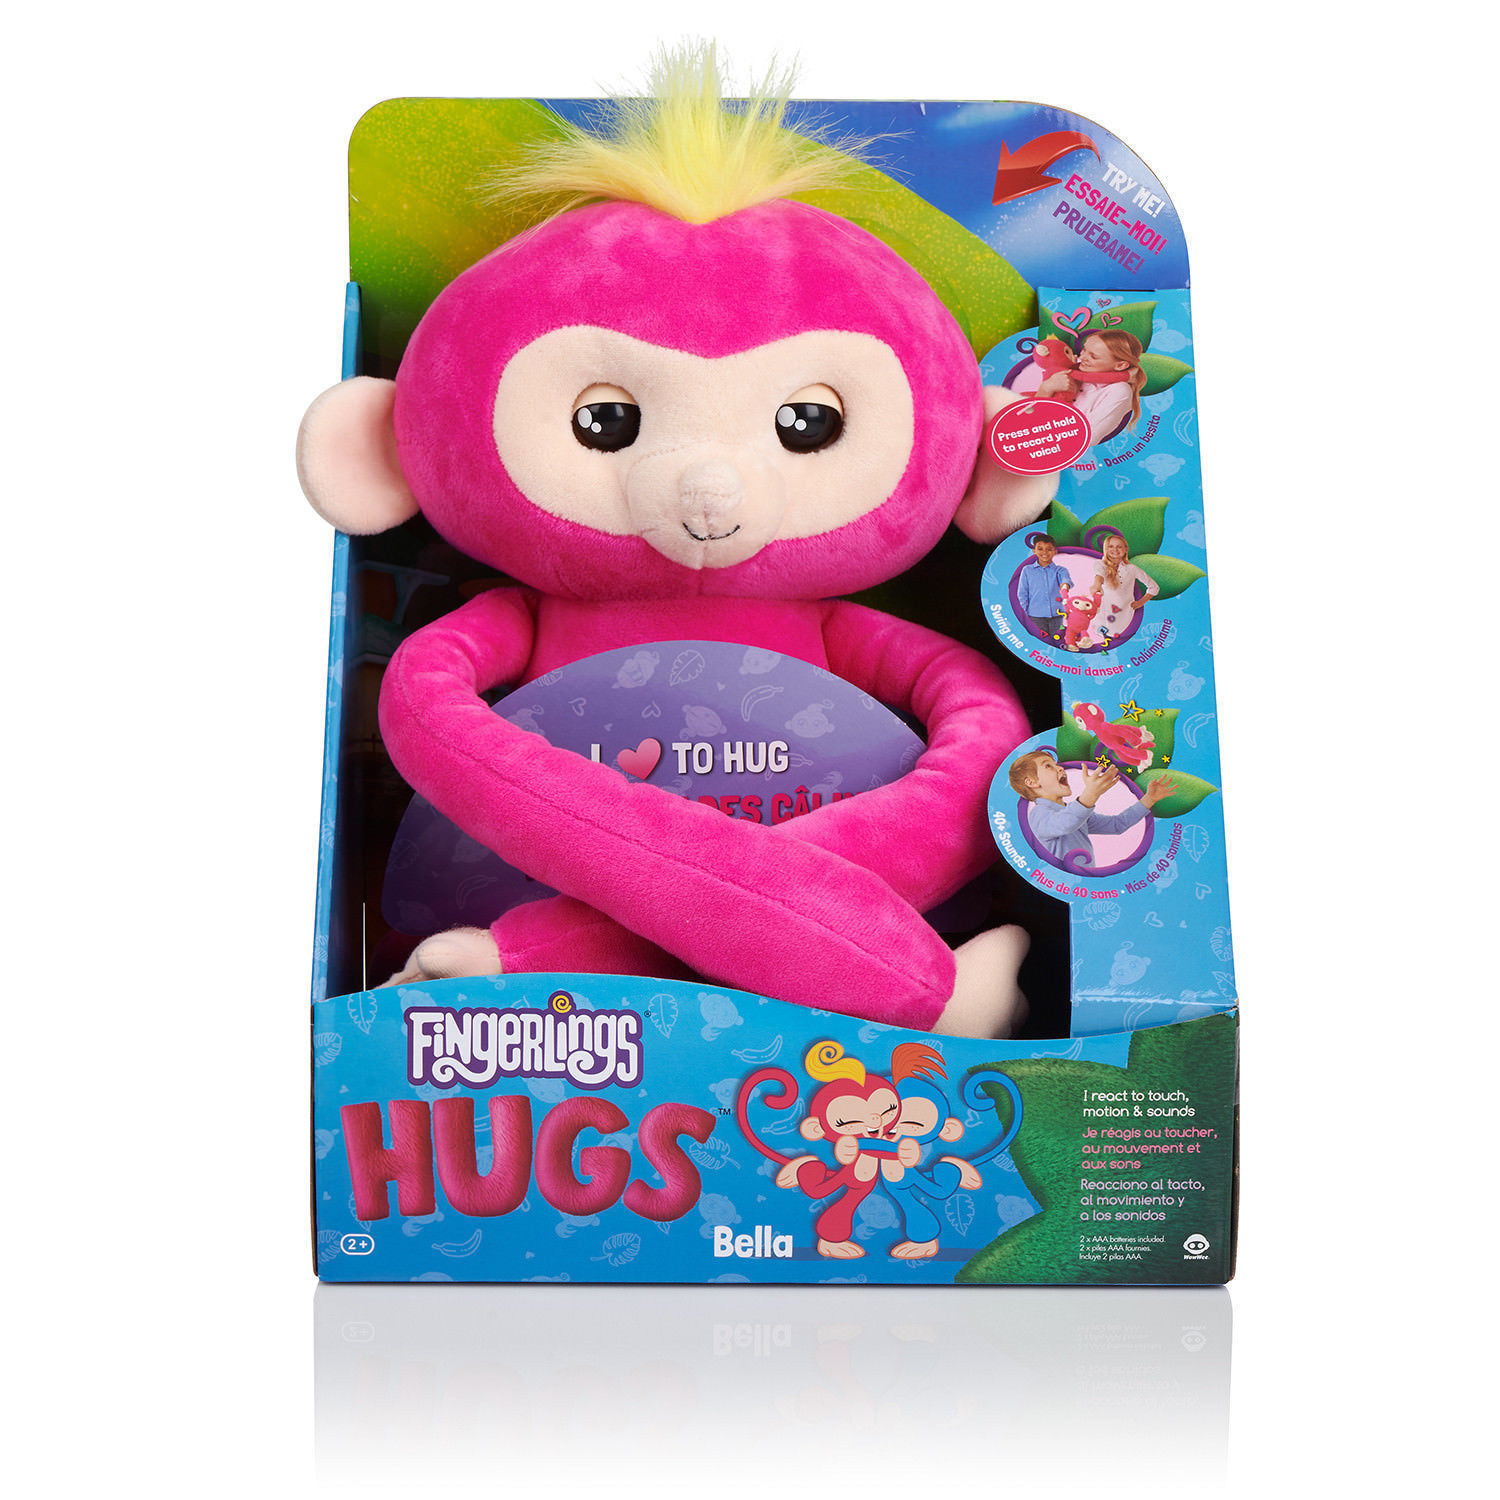 WooWee Fingerlings HUGS - BELLA - Friendly Interactive Plush Monkey Toy - pink